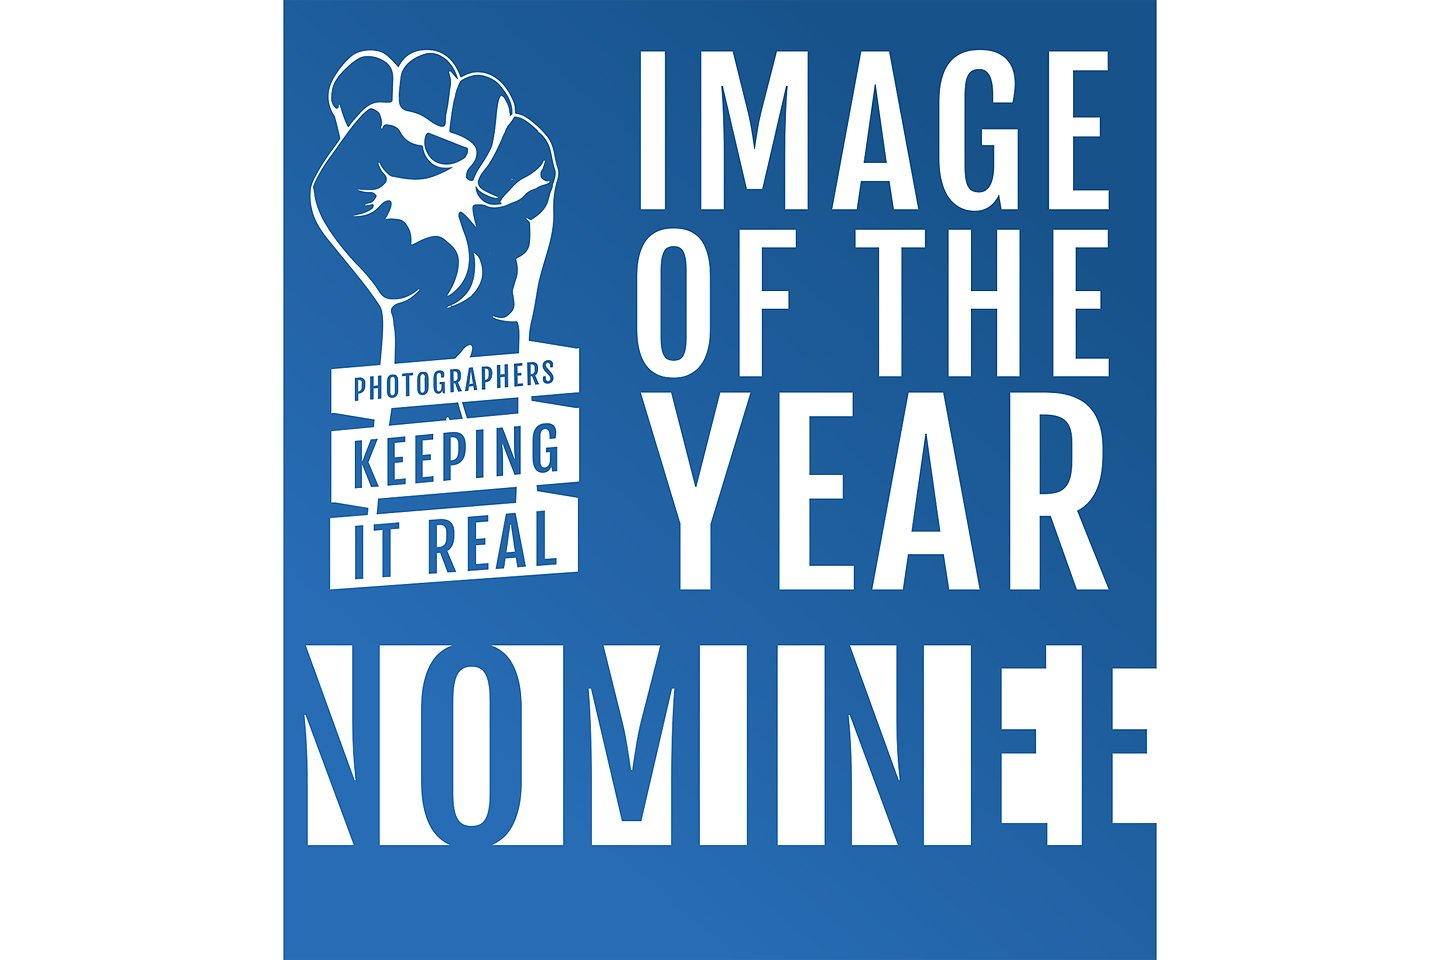 Keep-It-Real-Photographers-Image-of-the-year-blue-nominee_2019 35